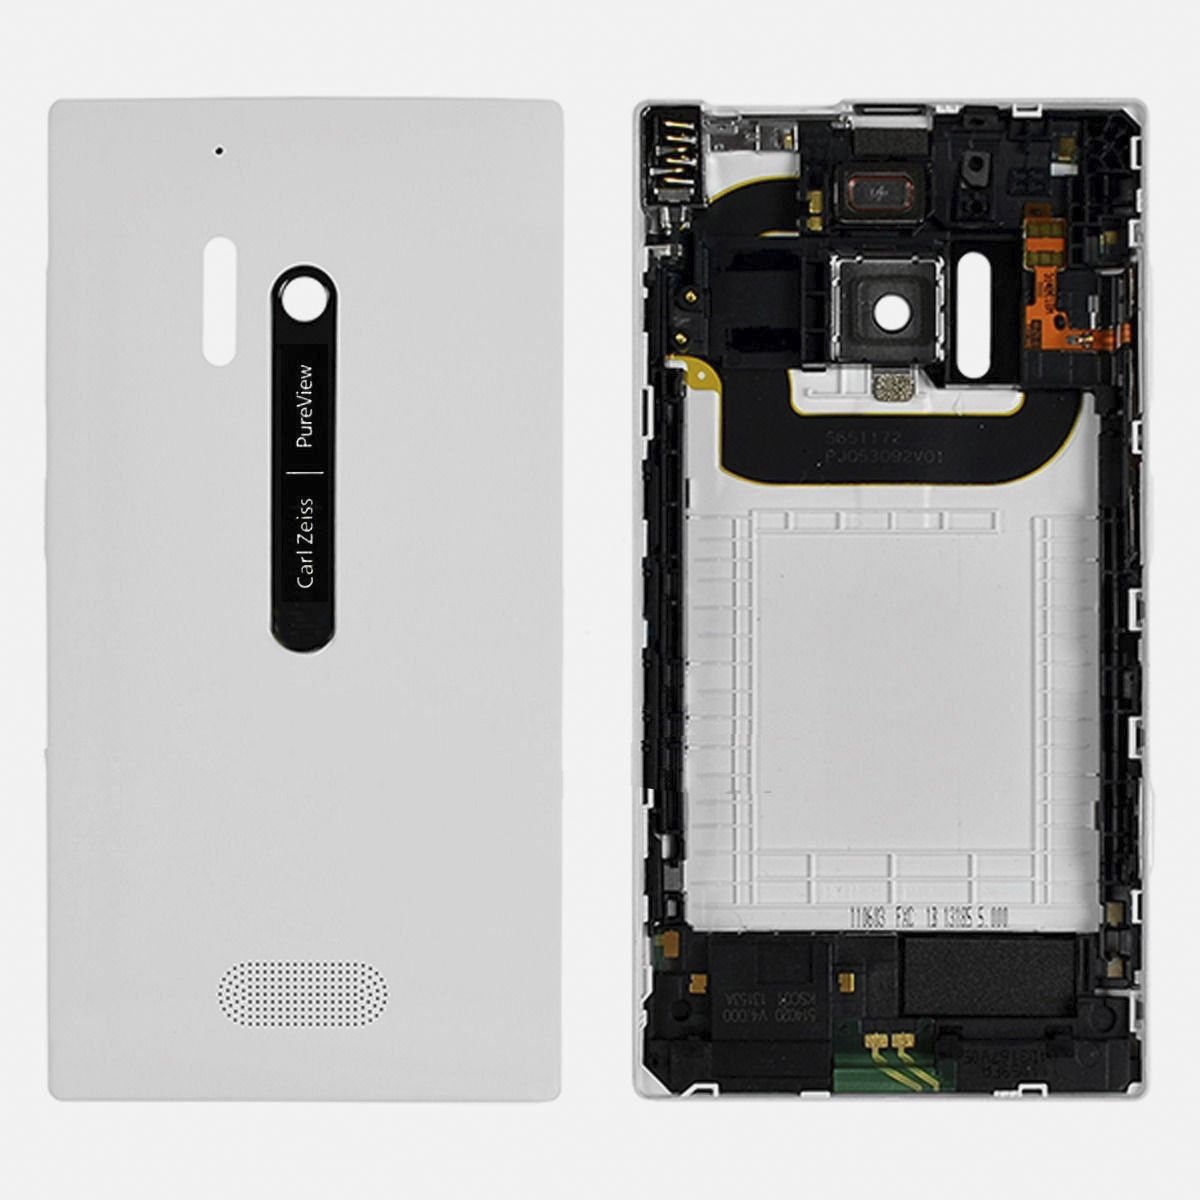 USA OEM Nokia Lumia 928 Back Cover Housing with Camera Lens & Button Keys White